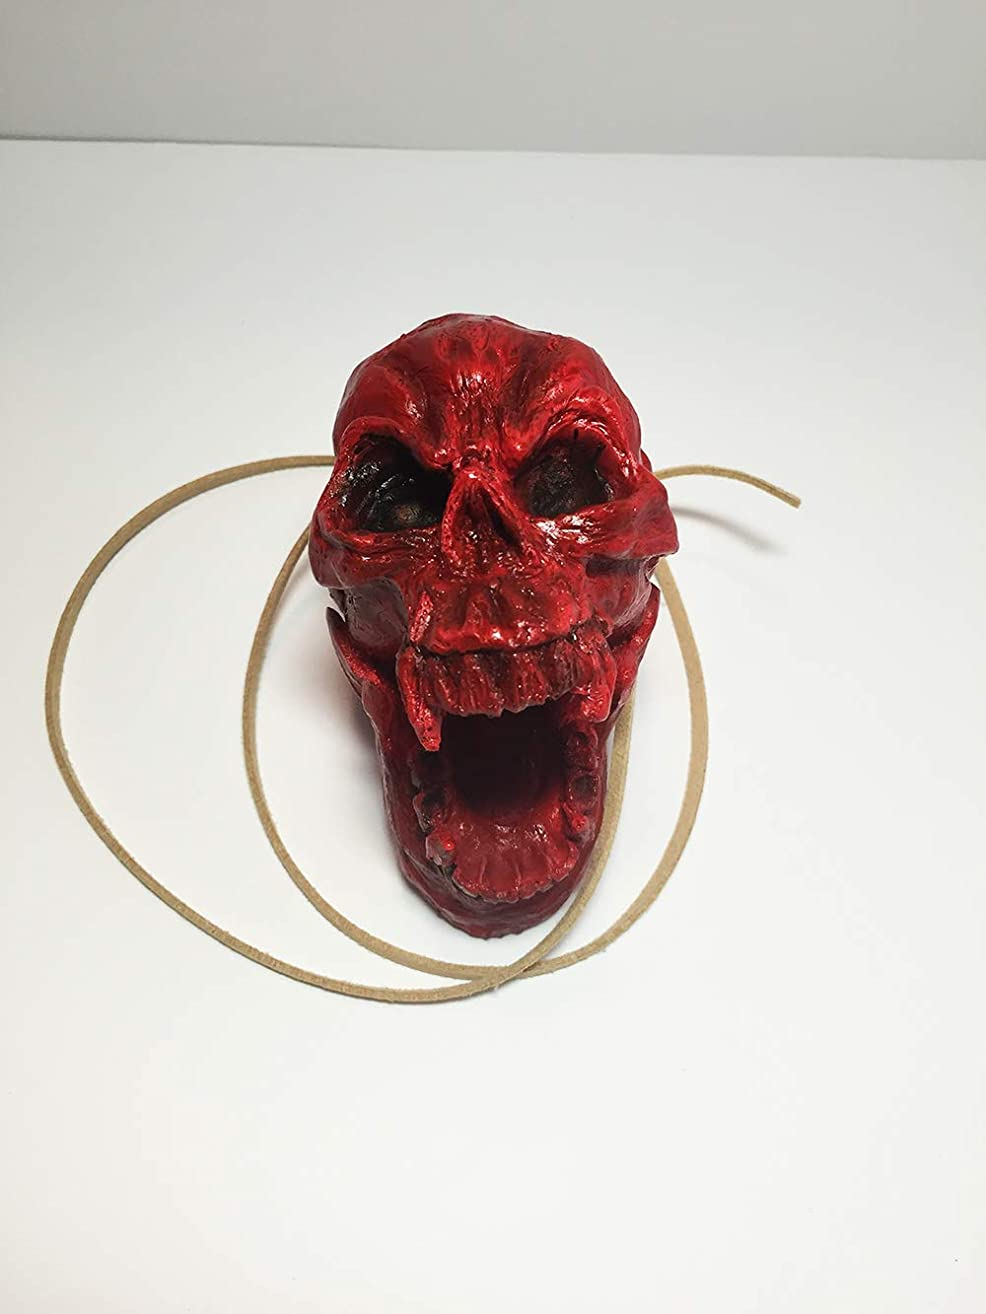 Aztec Death Whistle - Skull Blood Red